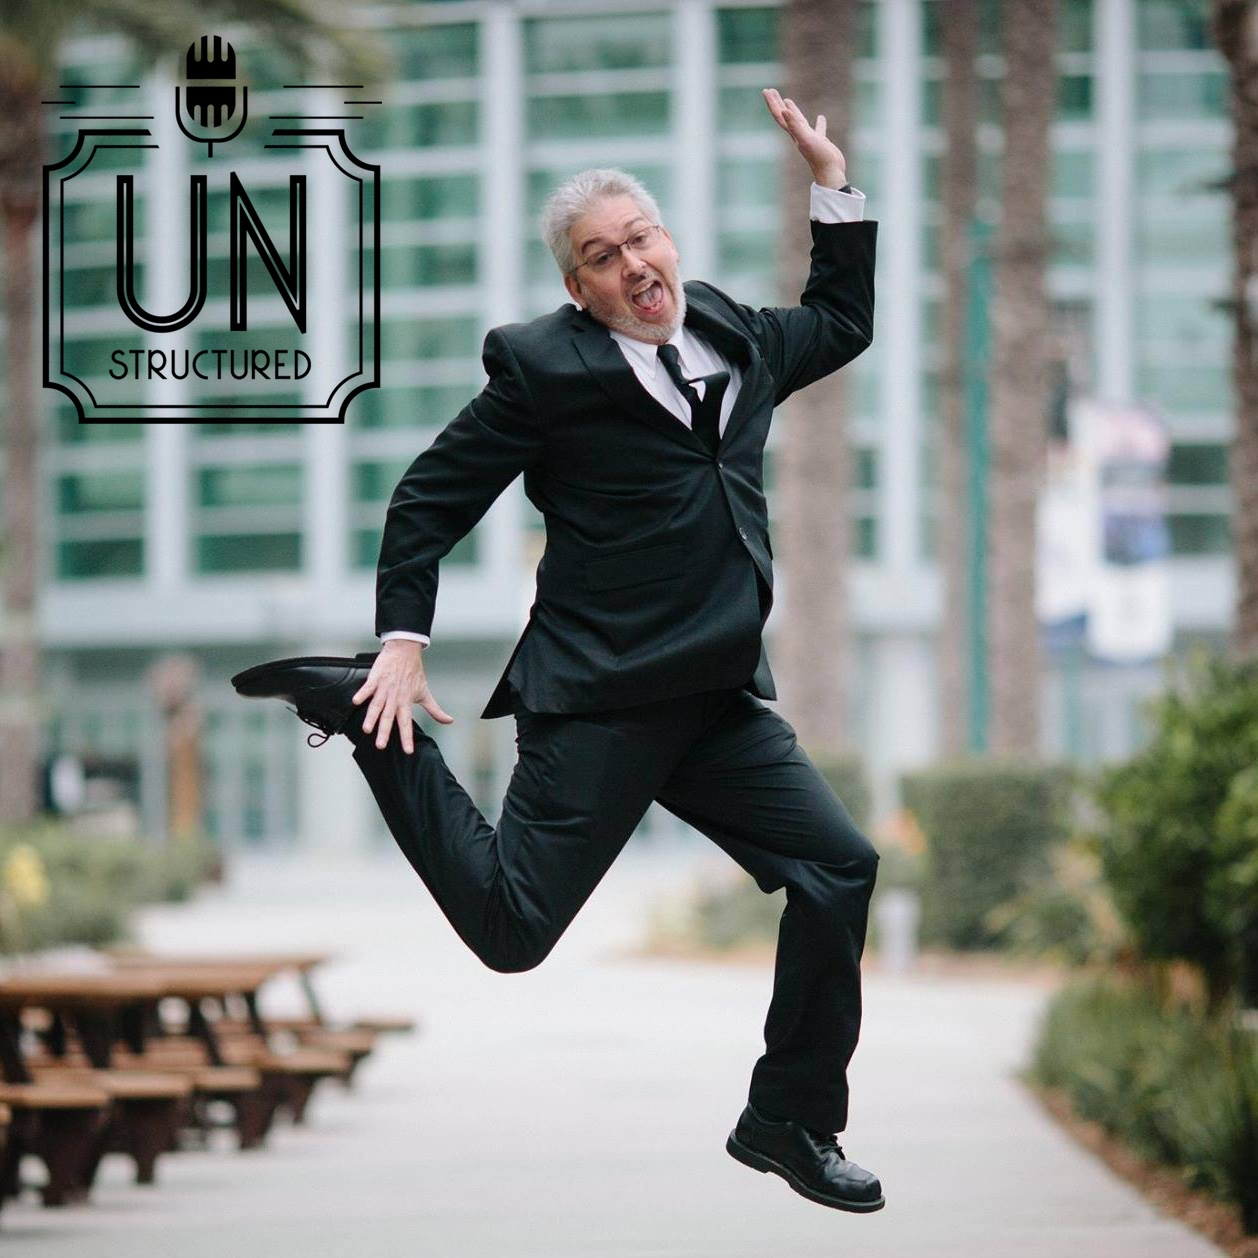 056 - Dave Jackson UnstructuredPod Unstructured interviews - Dynamic Informal Conversations with unique wide-ranging and well-researched interviews hosted by Eric Hunley